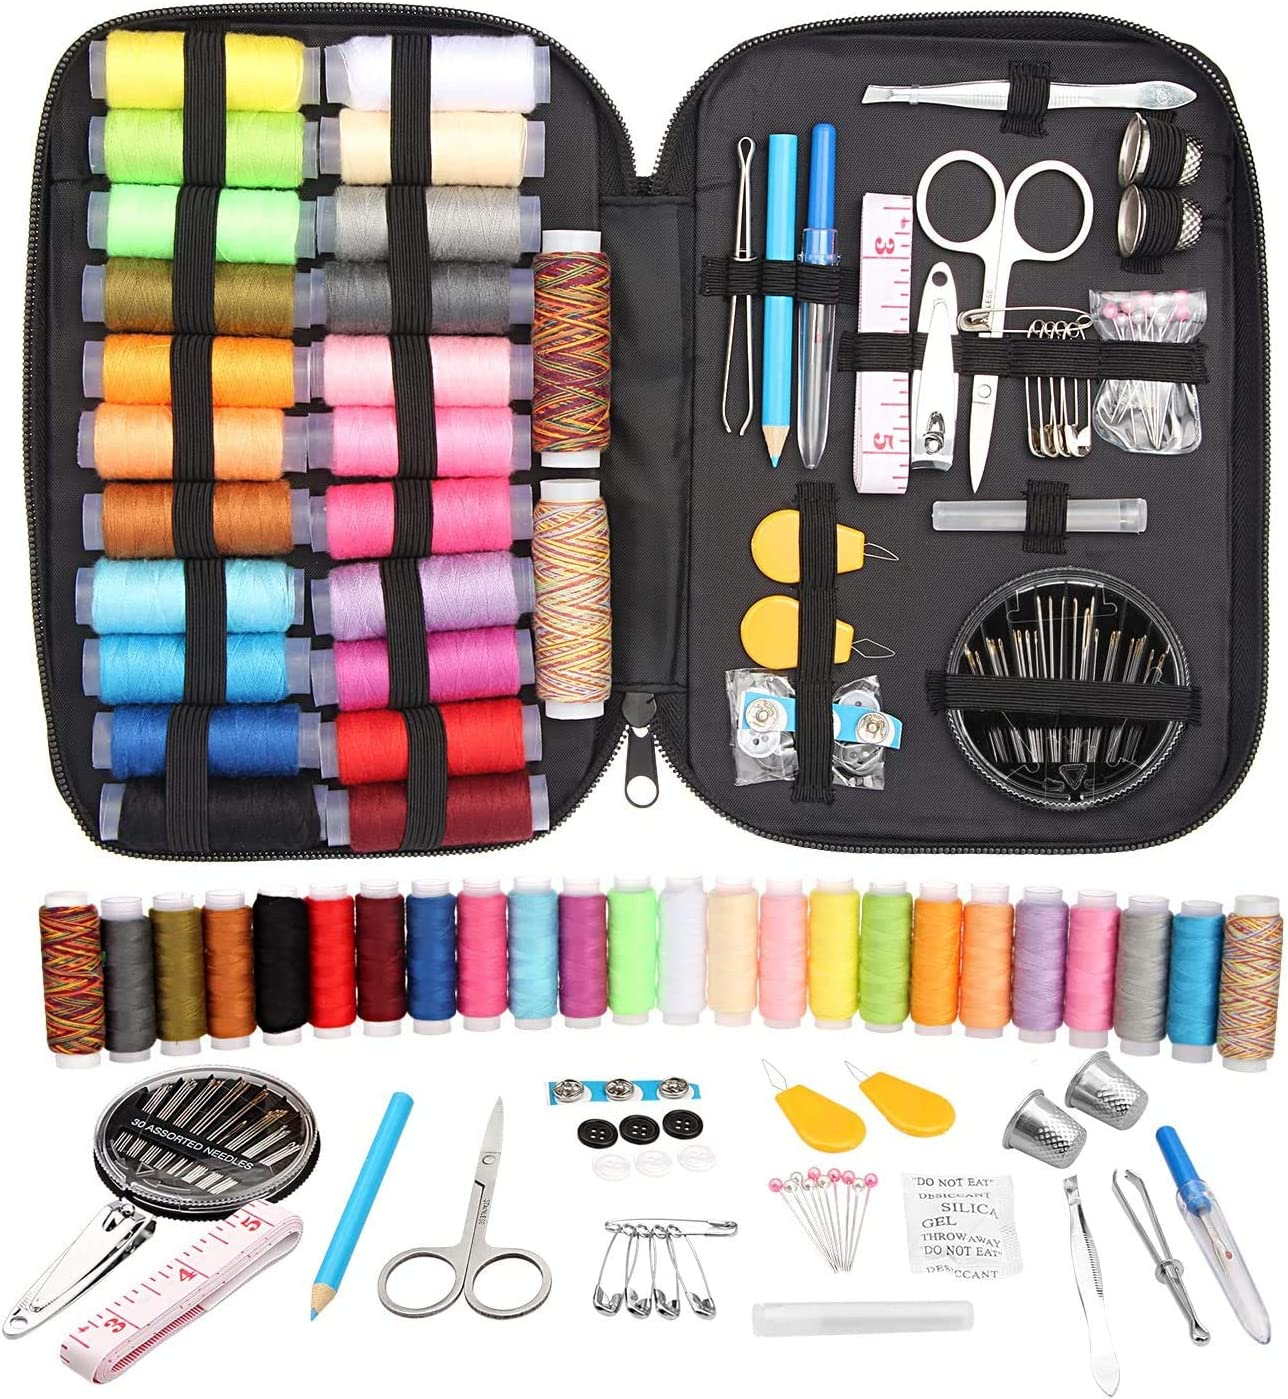 Sewing Kit In Tampa Mall a popularity with 200 Premium Supplies Portable